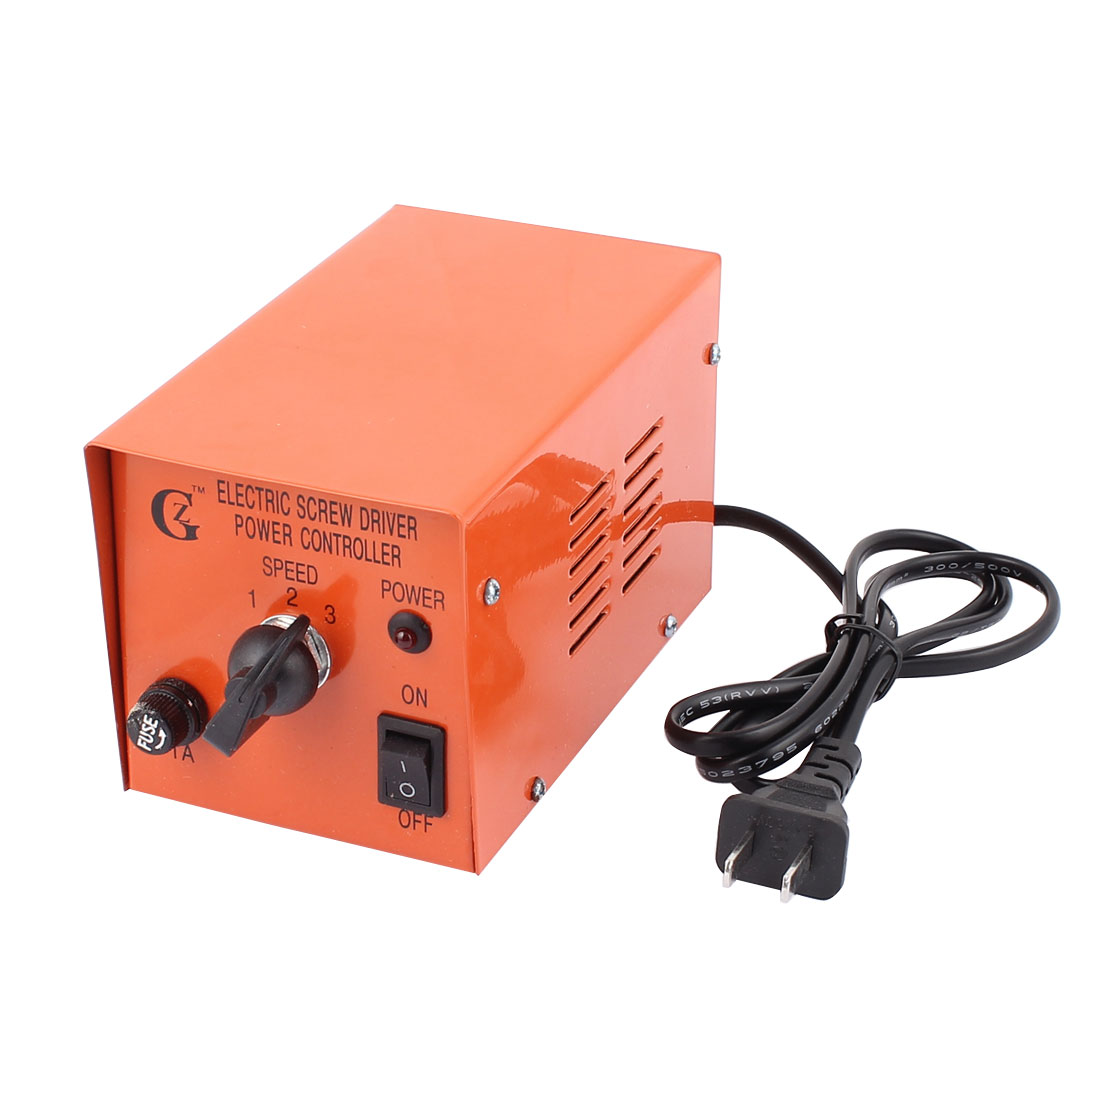 Metal Housing Electric Screw Driver Power Supply Controller Orange